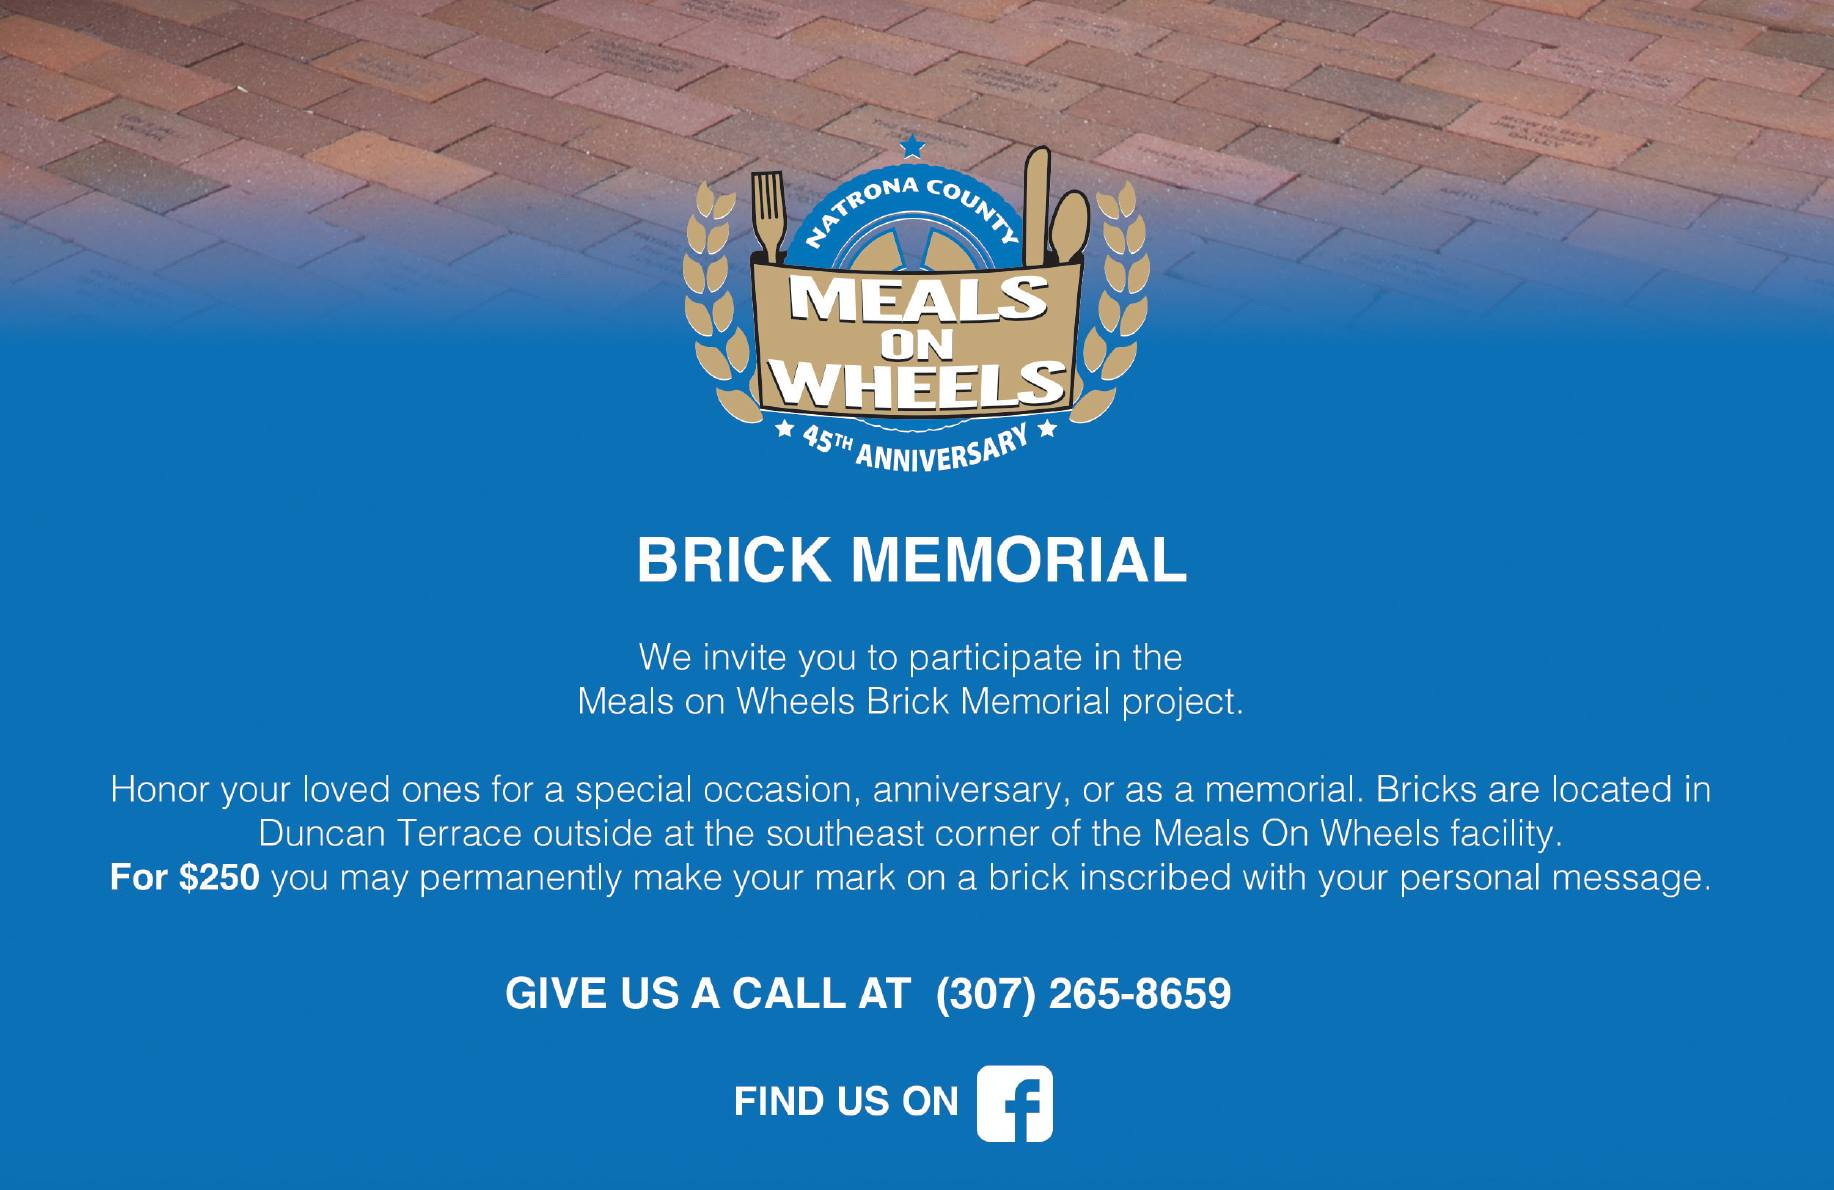 Brick Memorial - Meals on Wheels Project